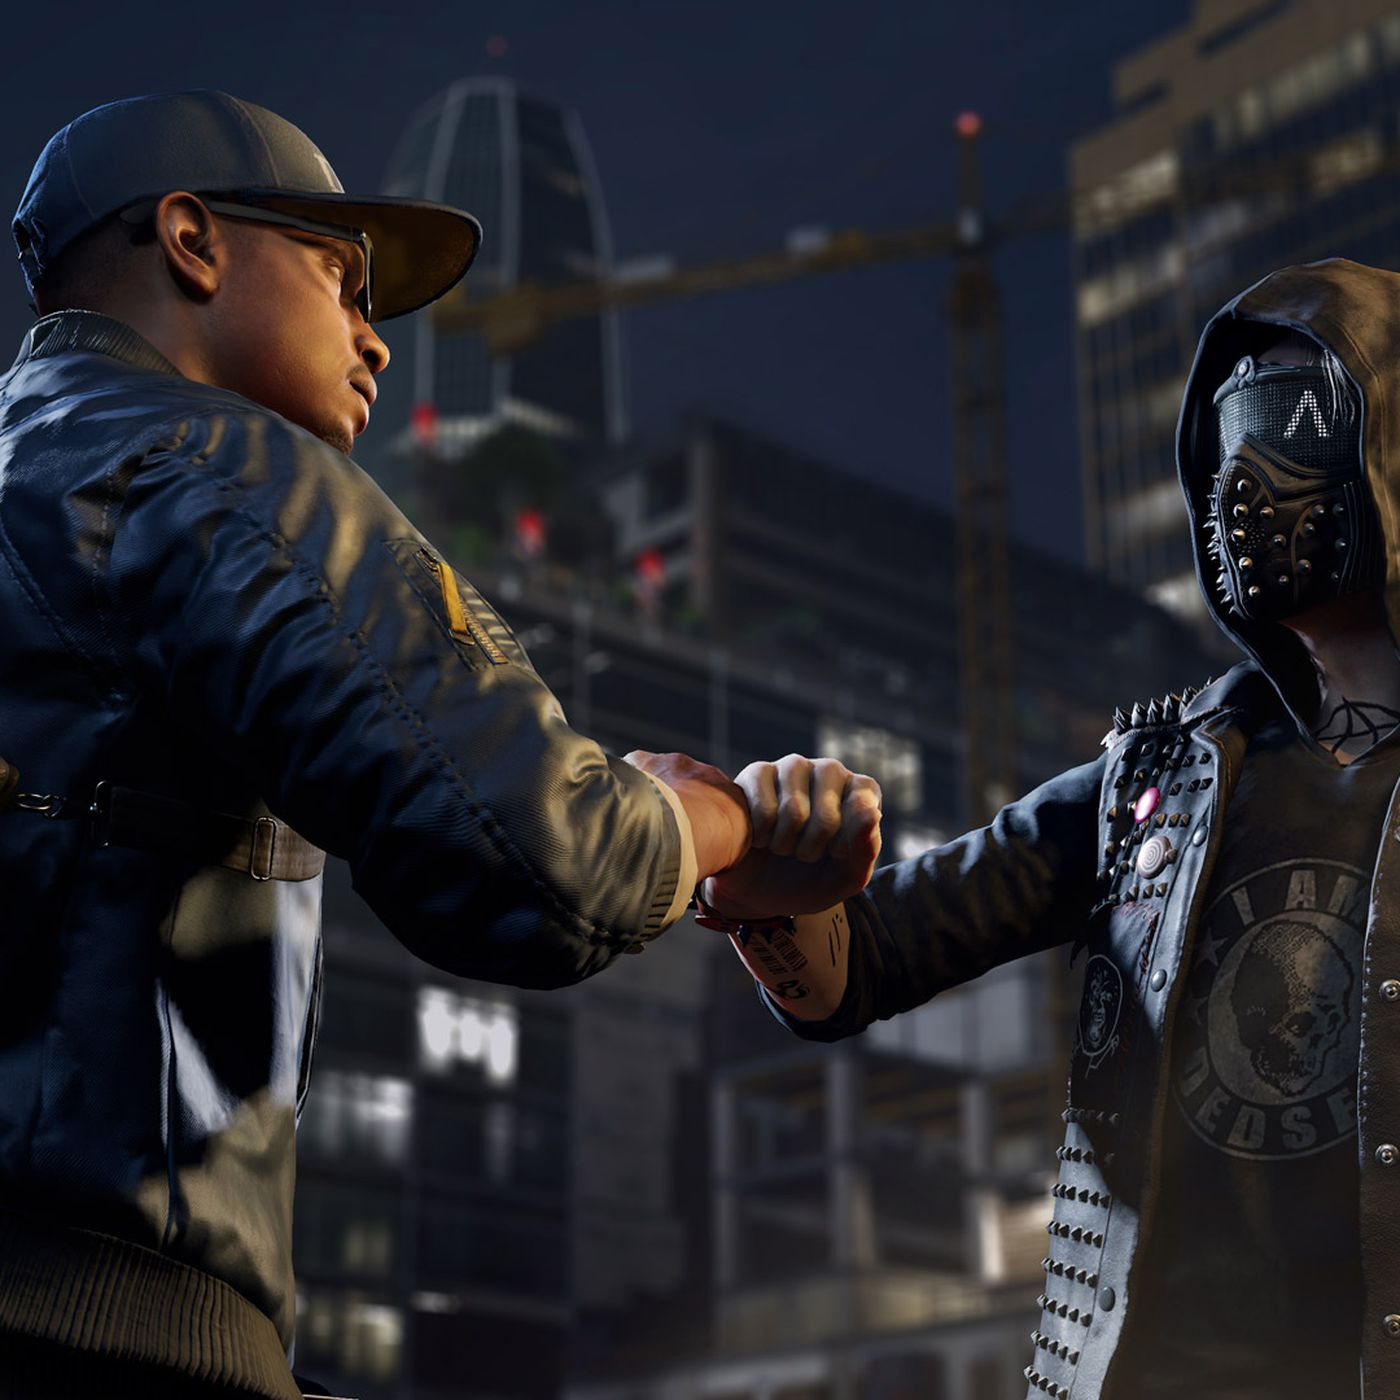 watch dogs 2 xbox one free download